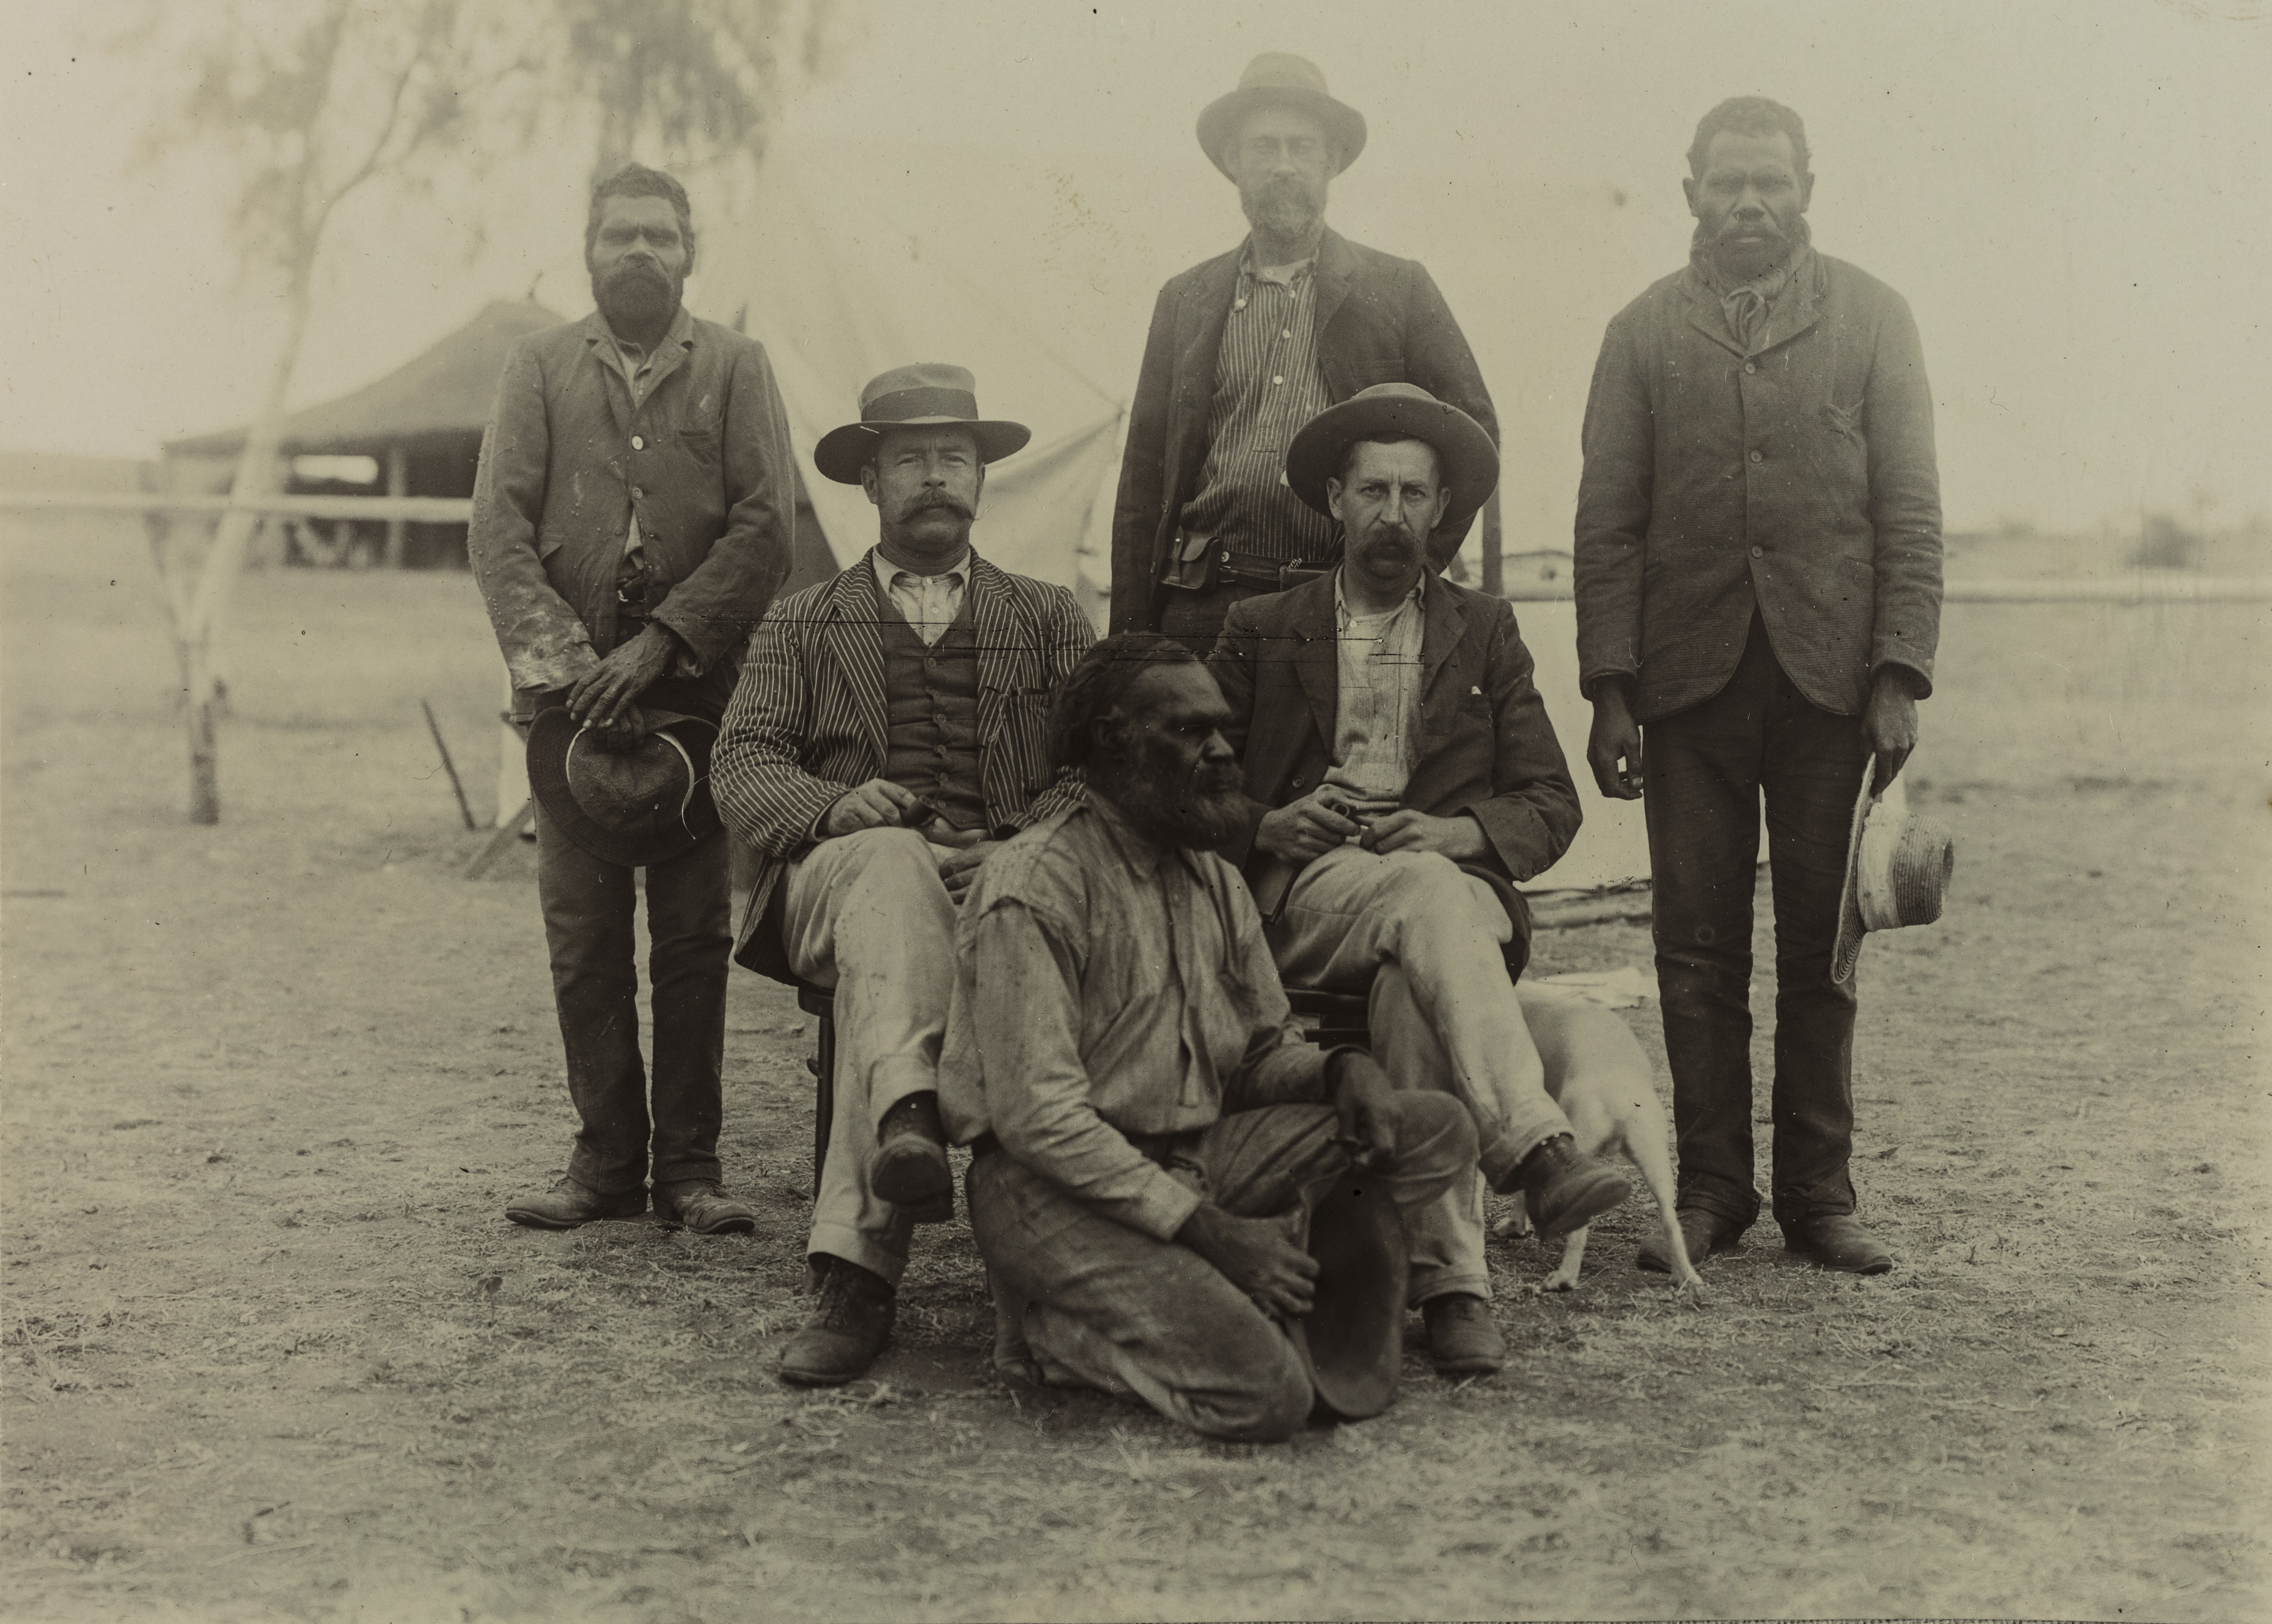 Depicts three Aboriginal men and three non-Aboriginal men posing for the camera in front of their camp.